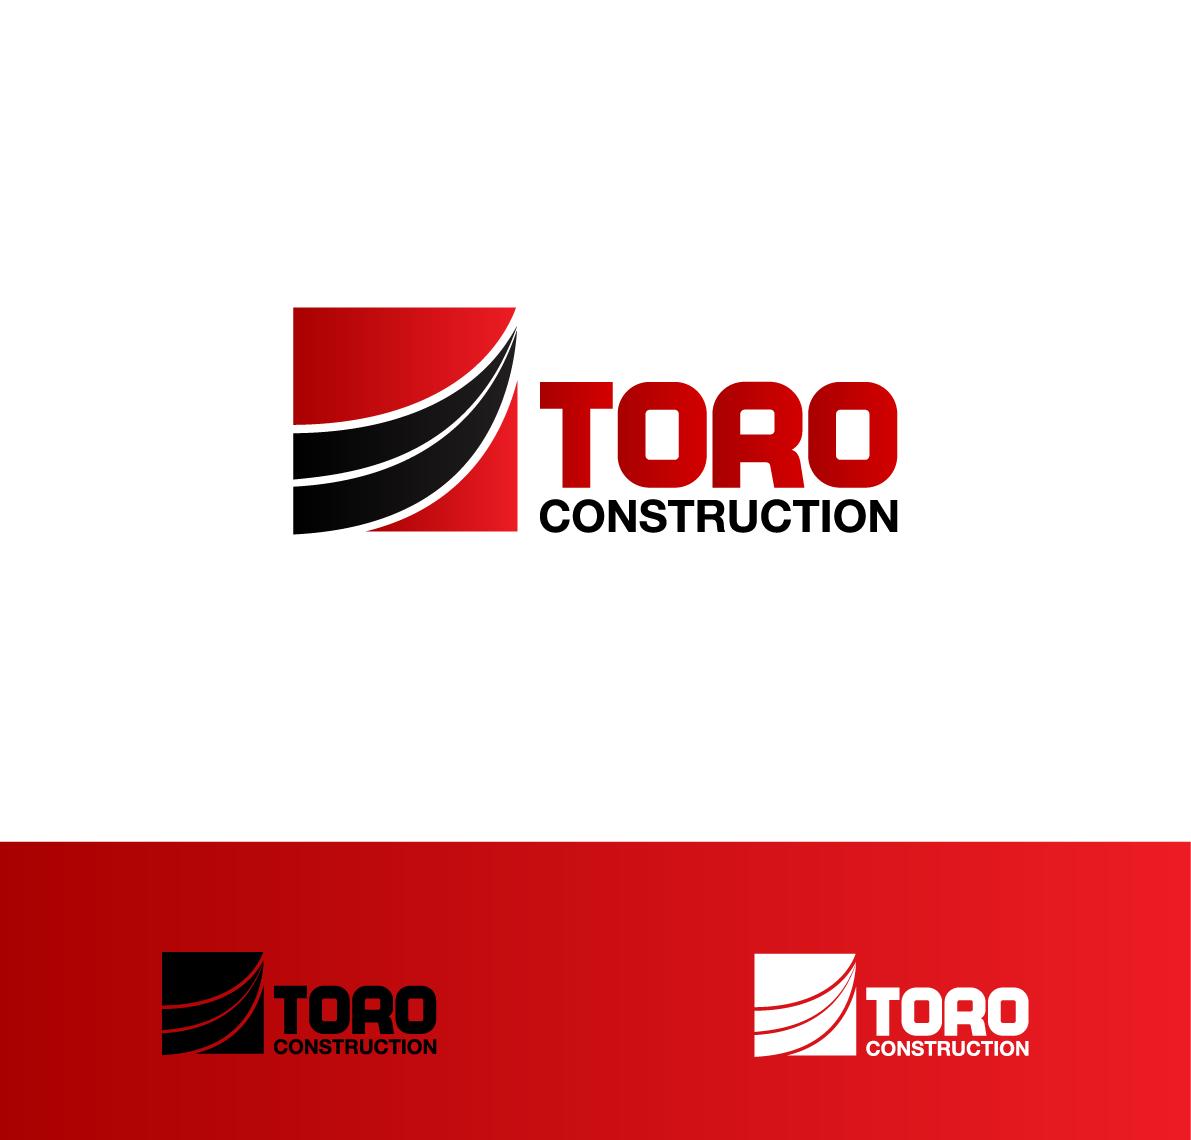 It company logo design for toro paving by catalogo for Just catalogo